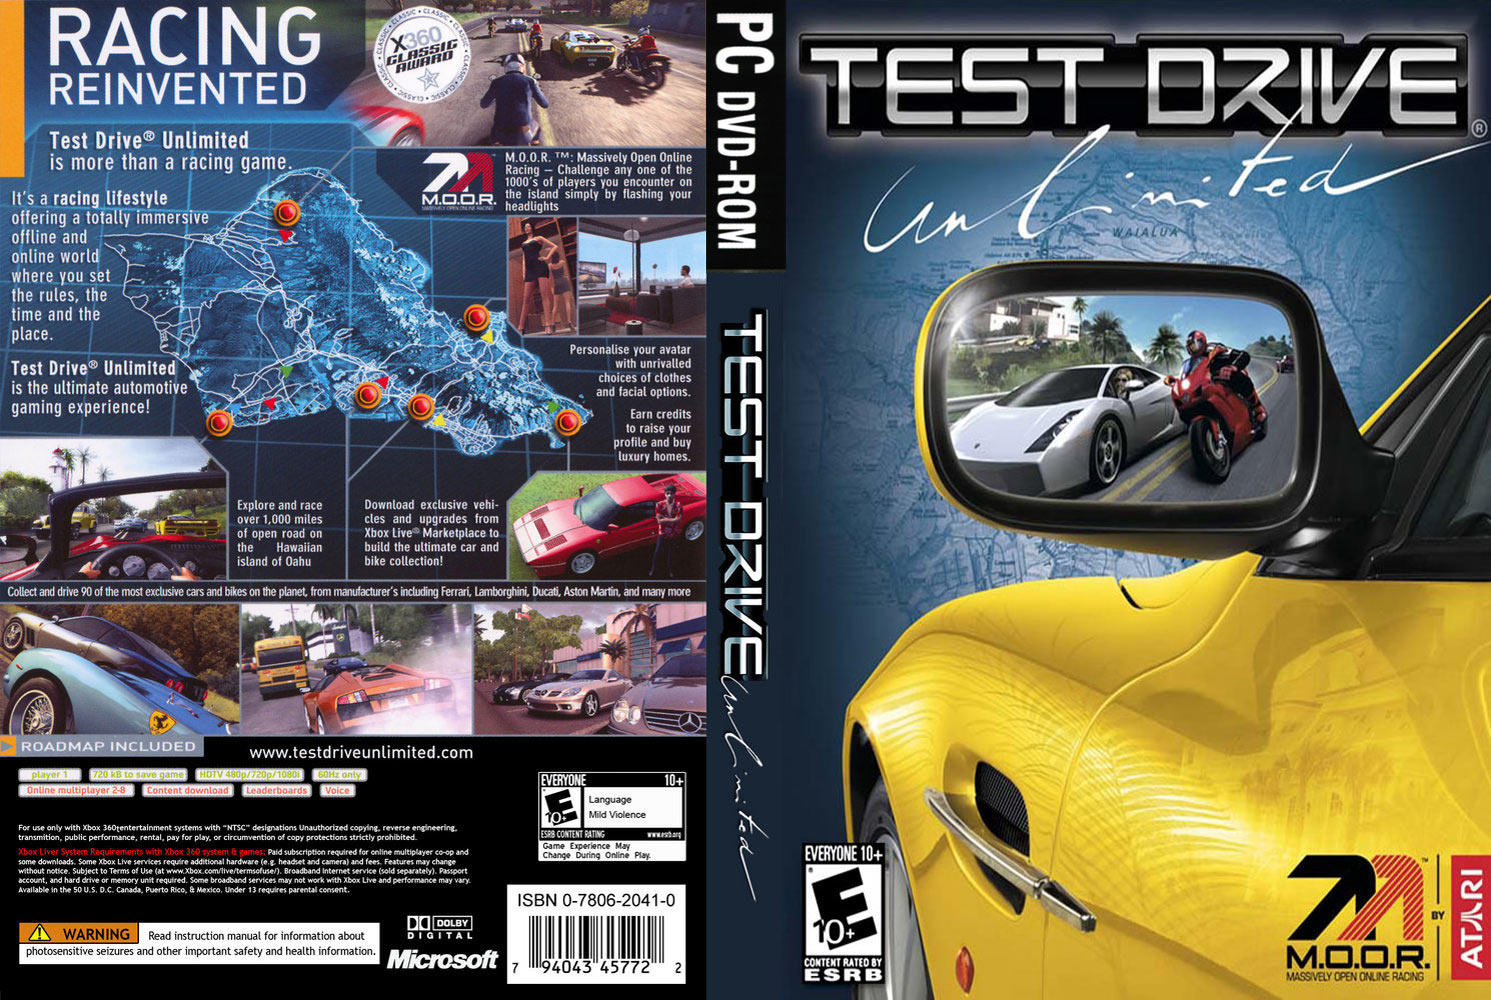 Test Drive Unlimited - DVD obal 2